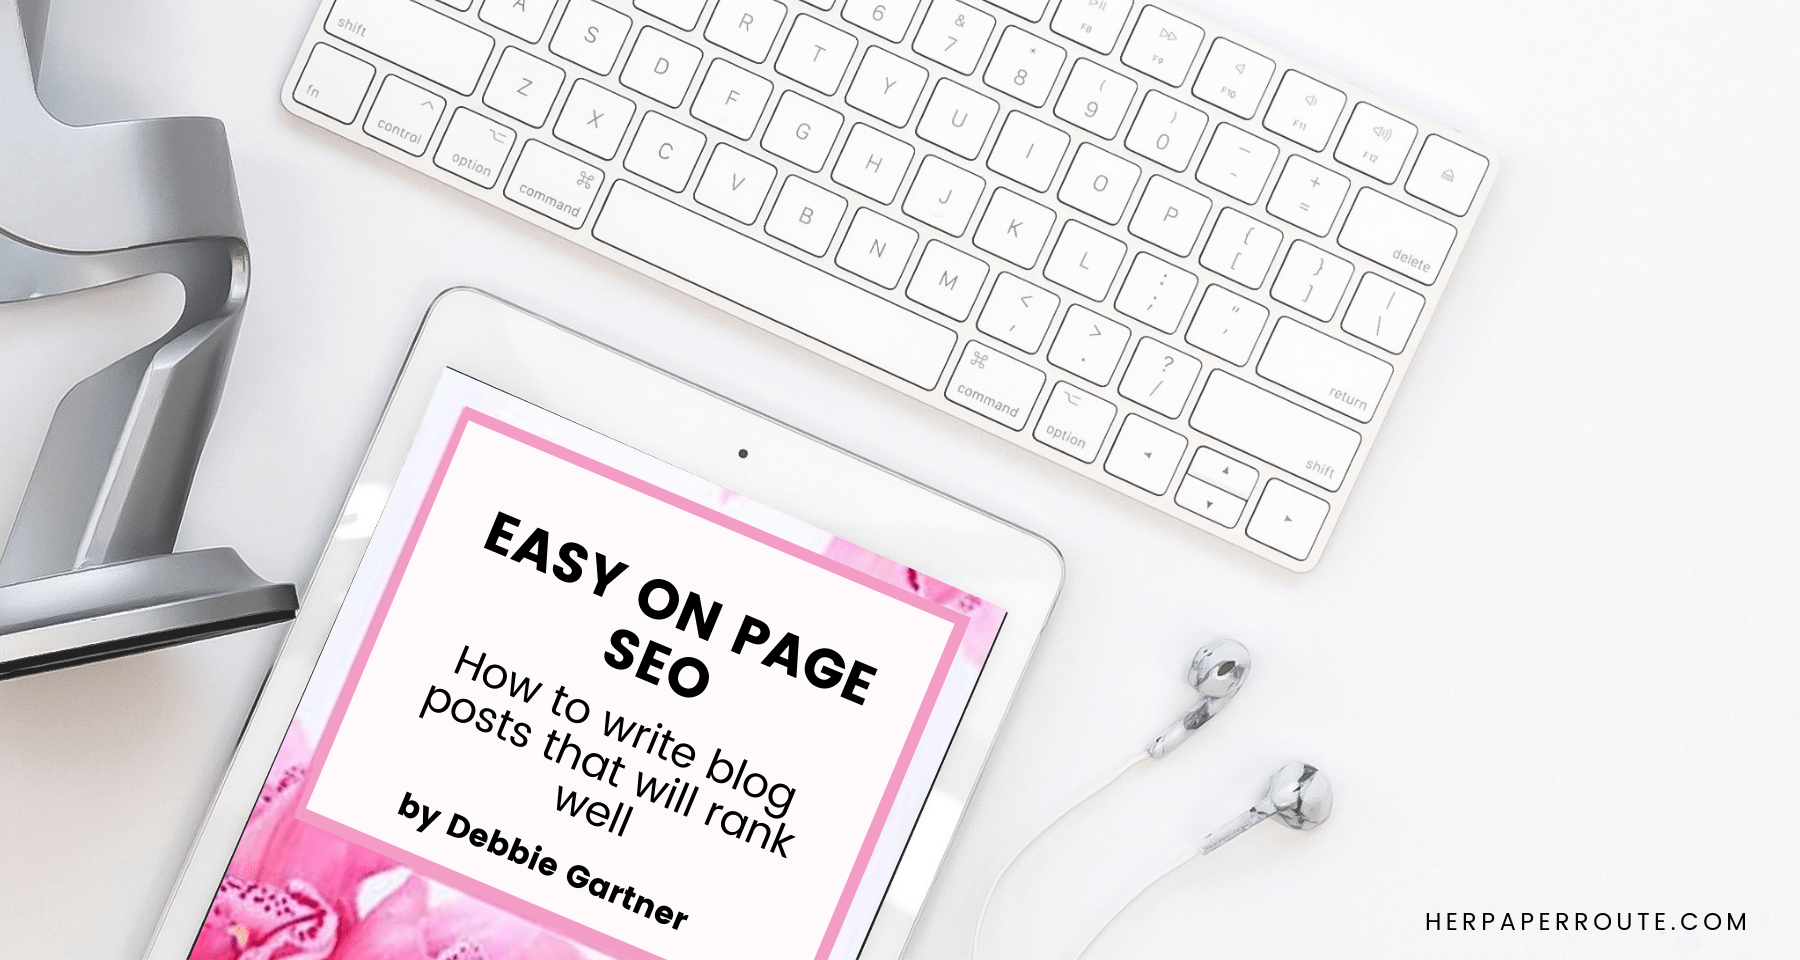 Easy On-Page SEO Tips Book by Debbie Gartner, Review 2